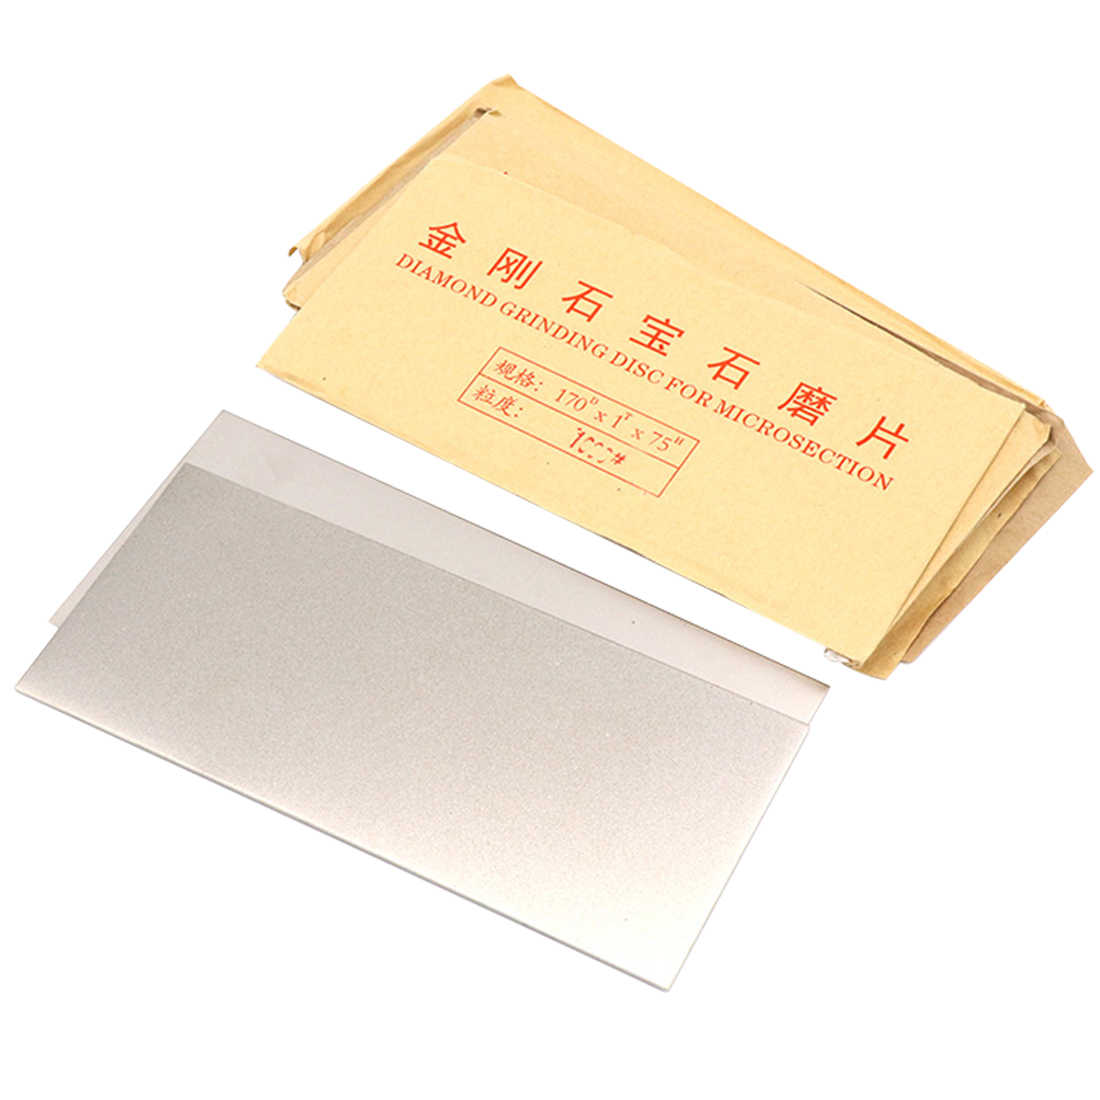 120-3000 Diamond Sharpening Plate Whetstone For Grinding Stone/Jade/Seal Carving Knife/Wood Crafts Diamond Plate Grinding Tool